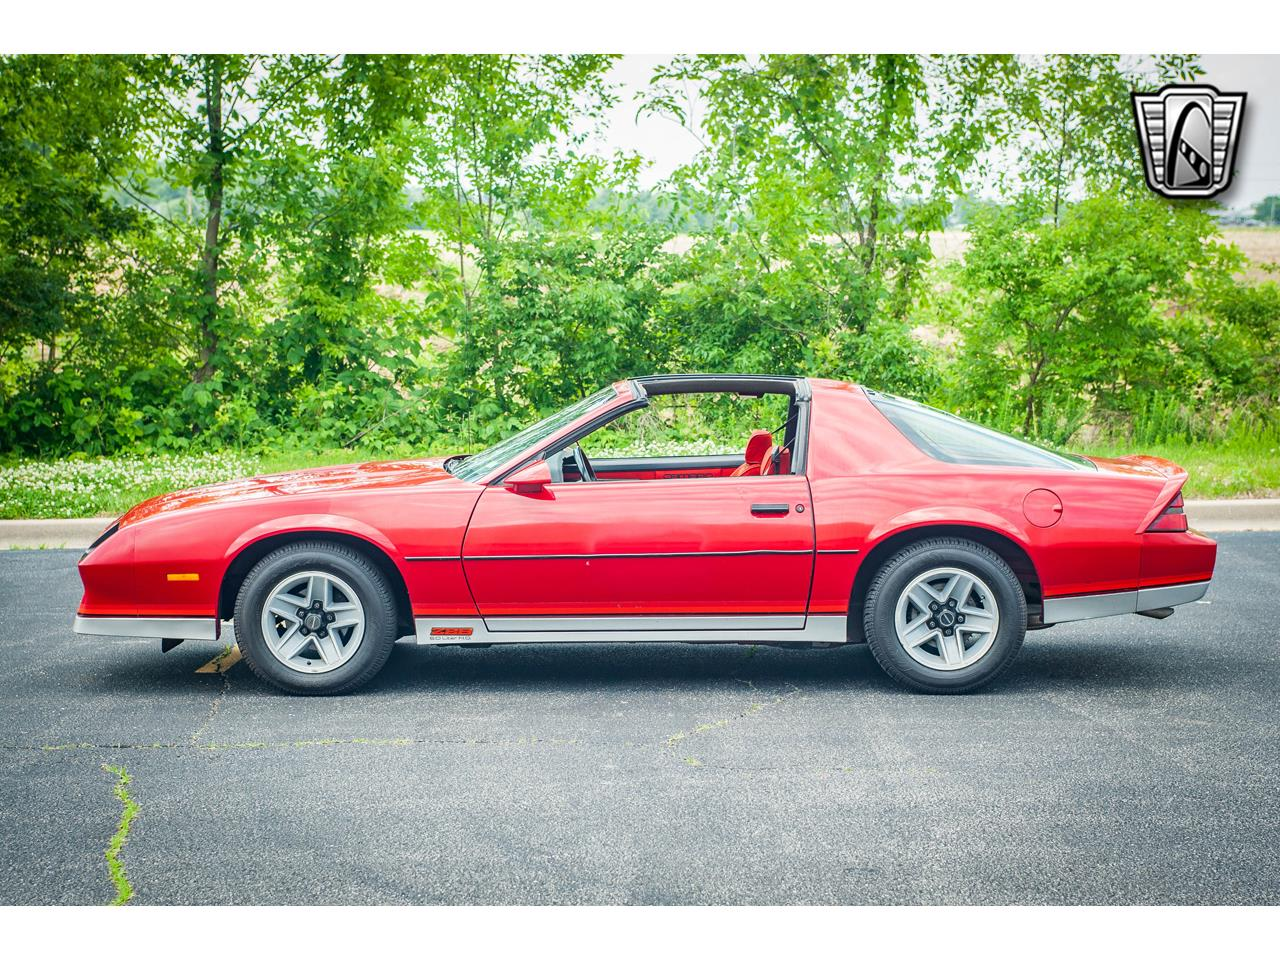 Large Picture of '84 Chevrolet Camaro - $9,500.00 Offered by Gateway Classic Cars - St. Louis - QB9Y